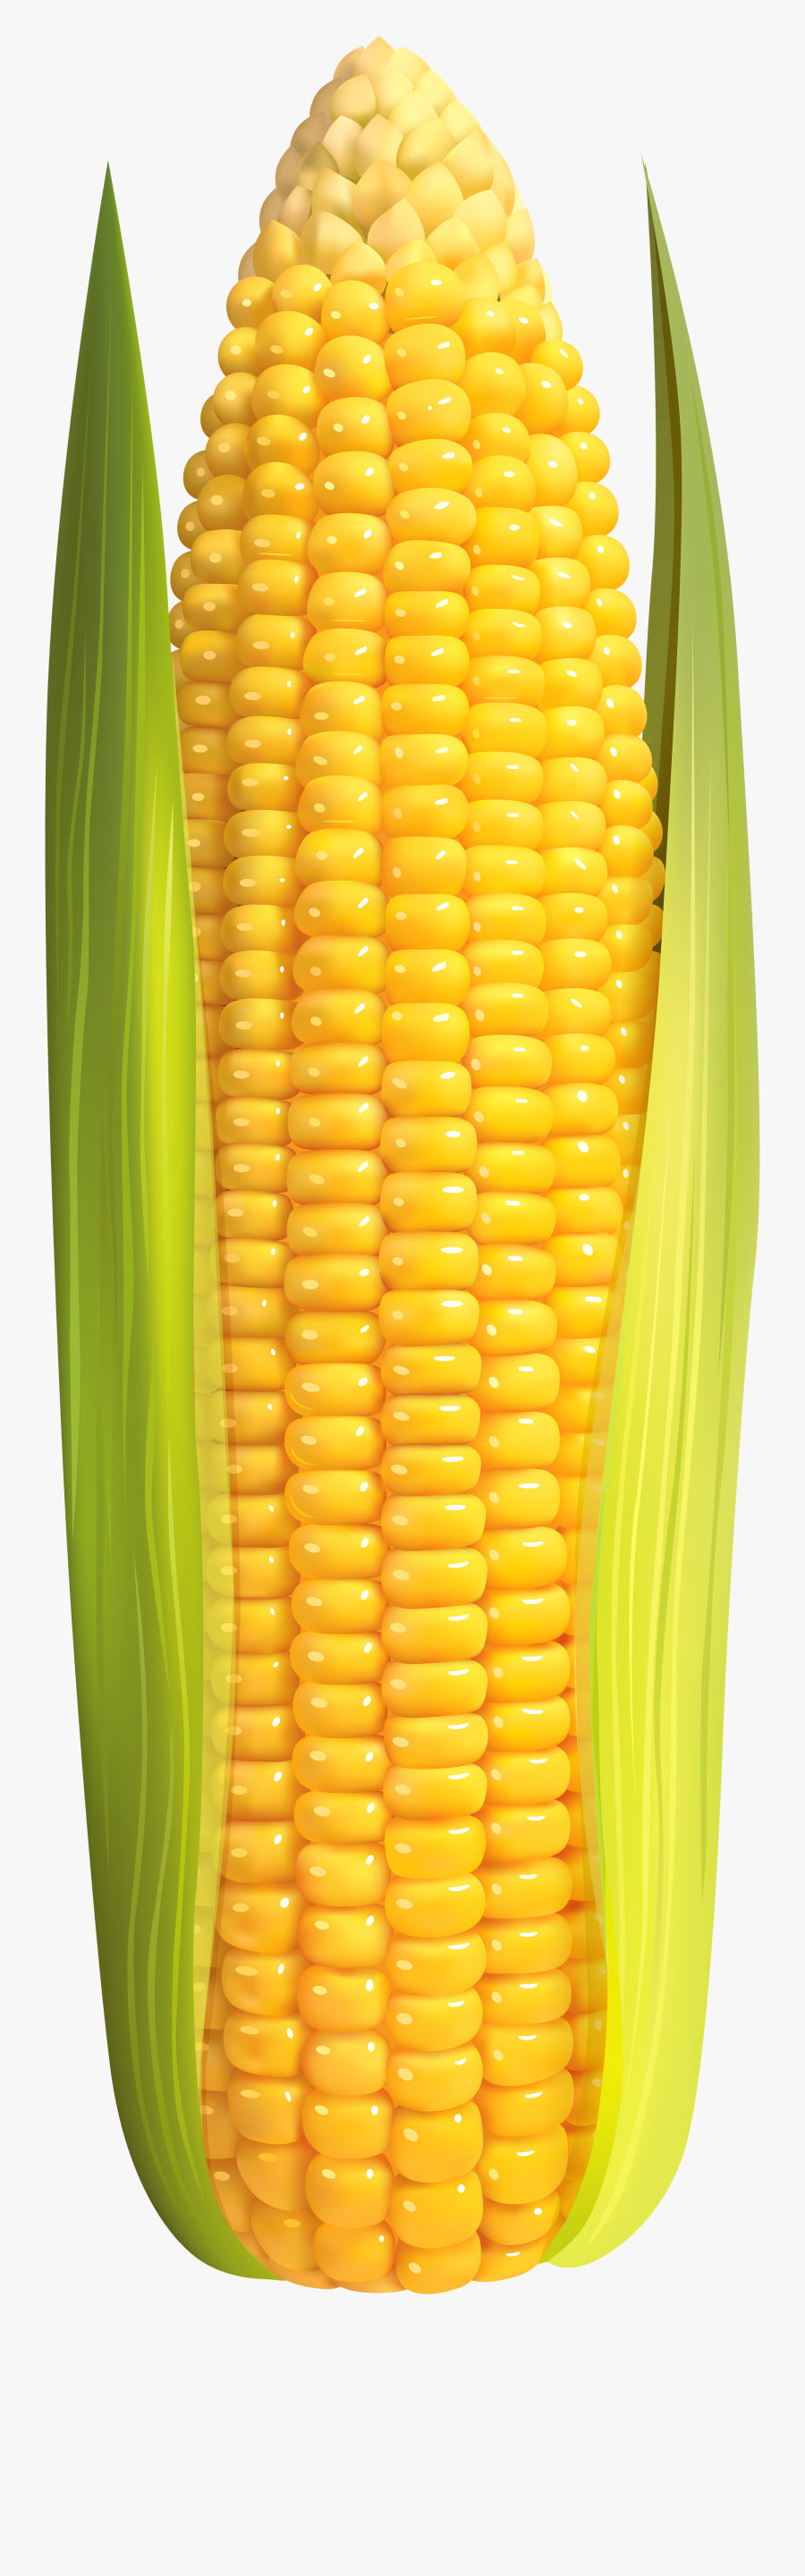 Clip Art Image Gallery Transparent Background - Corn On The Cob Png, Transparent Clipart